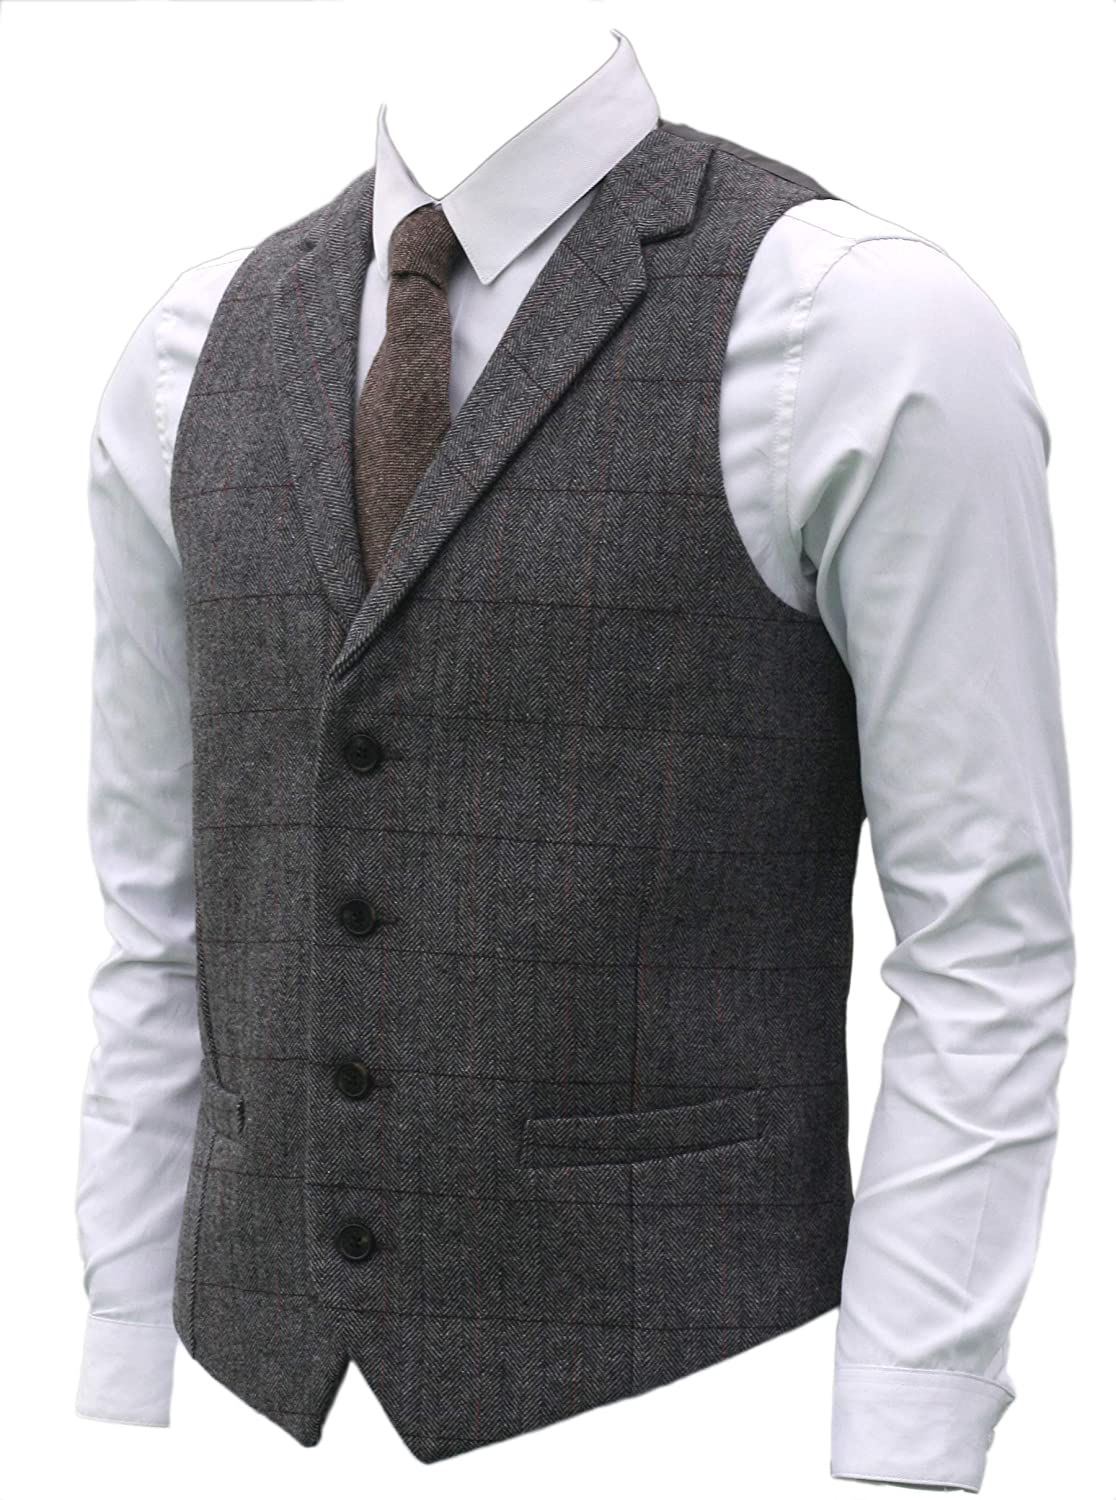 Ruth/&Boaz 2Pockets/ 4Buttons/ Wool/ Herringbone Tweed/ Tailored/ Collar/ Suit/ Vest